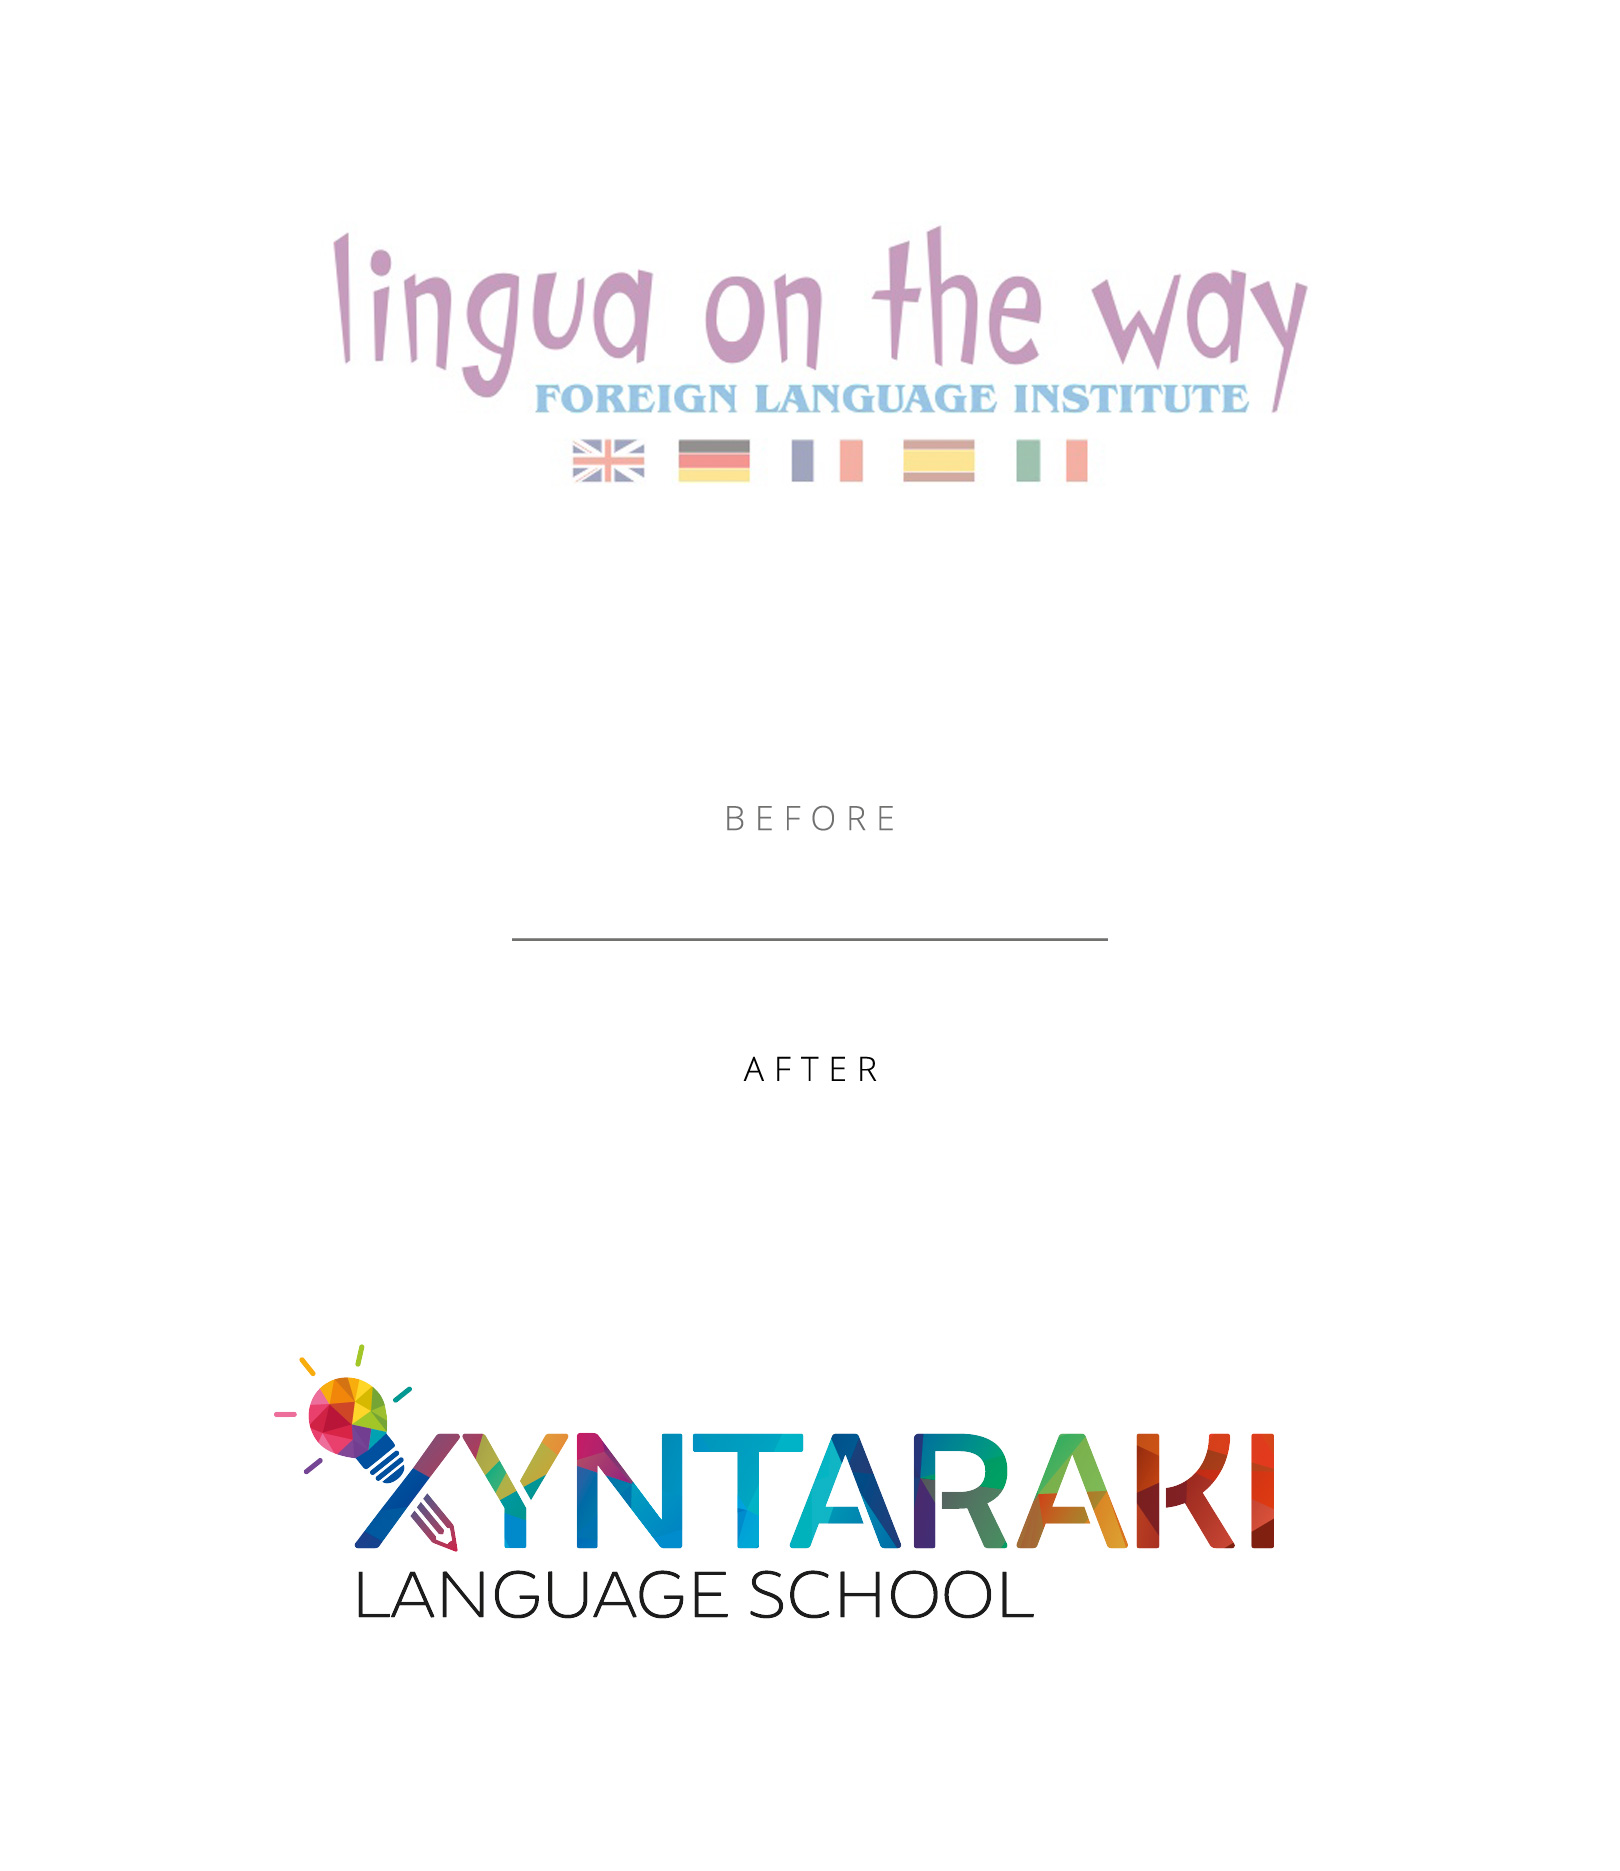 Xyntaraki Language School logo before and after